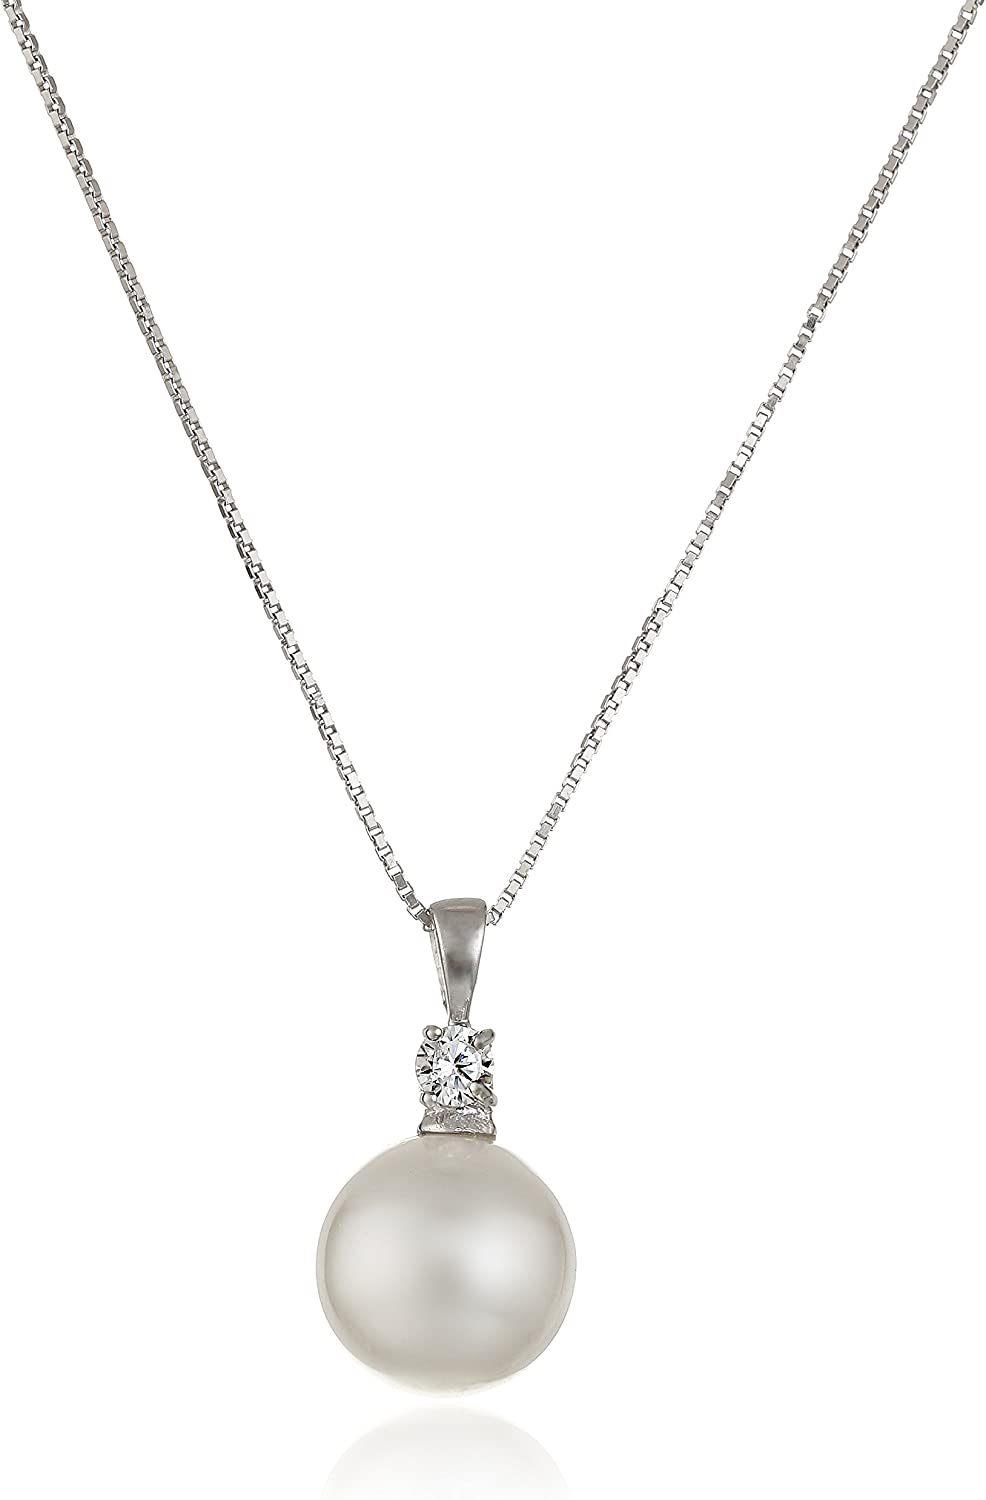 Sterling Silver Simulated Pearl and Cubic Zirconia Pendant Neckl